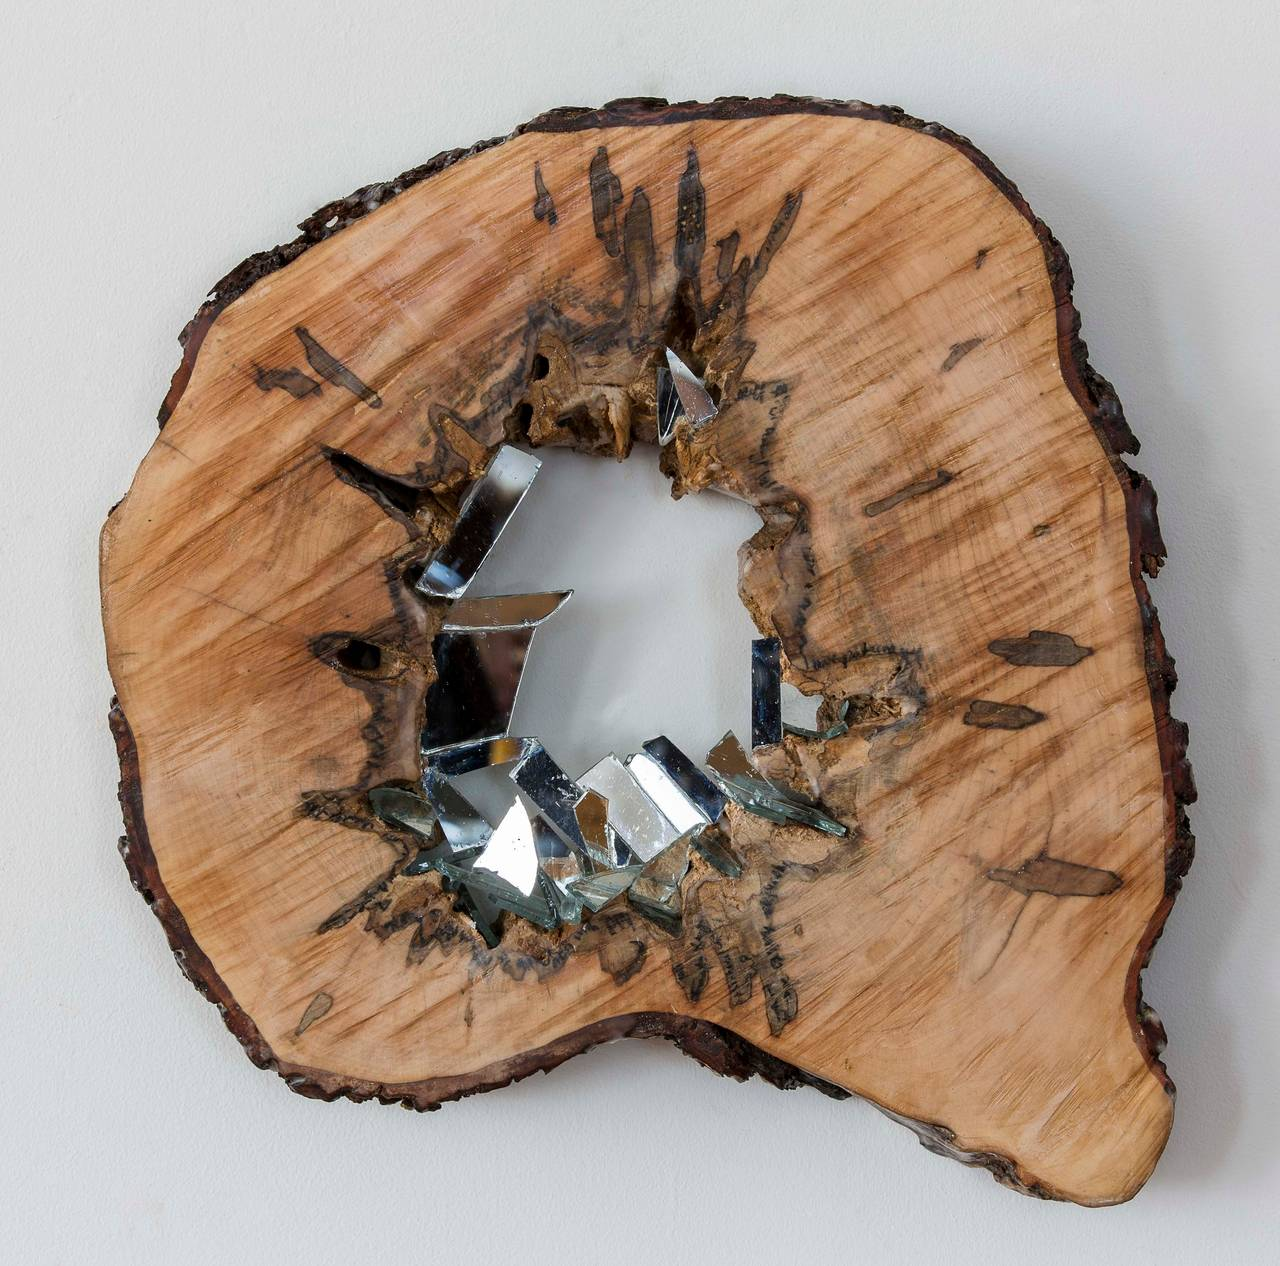 Vestige Three, Circular Natural Wall Hanging Wood Slice Sculpture with Mirror